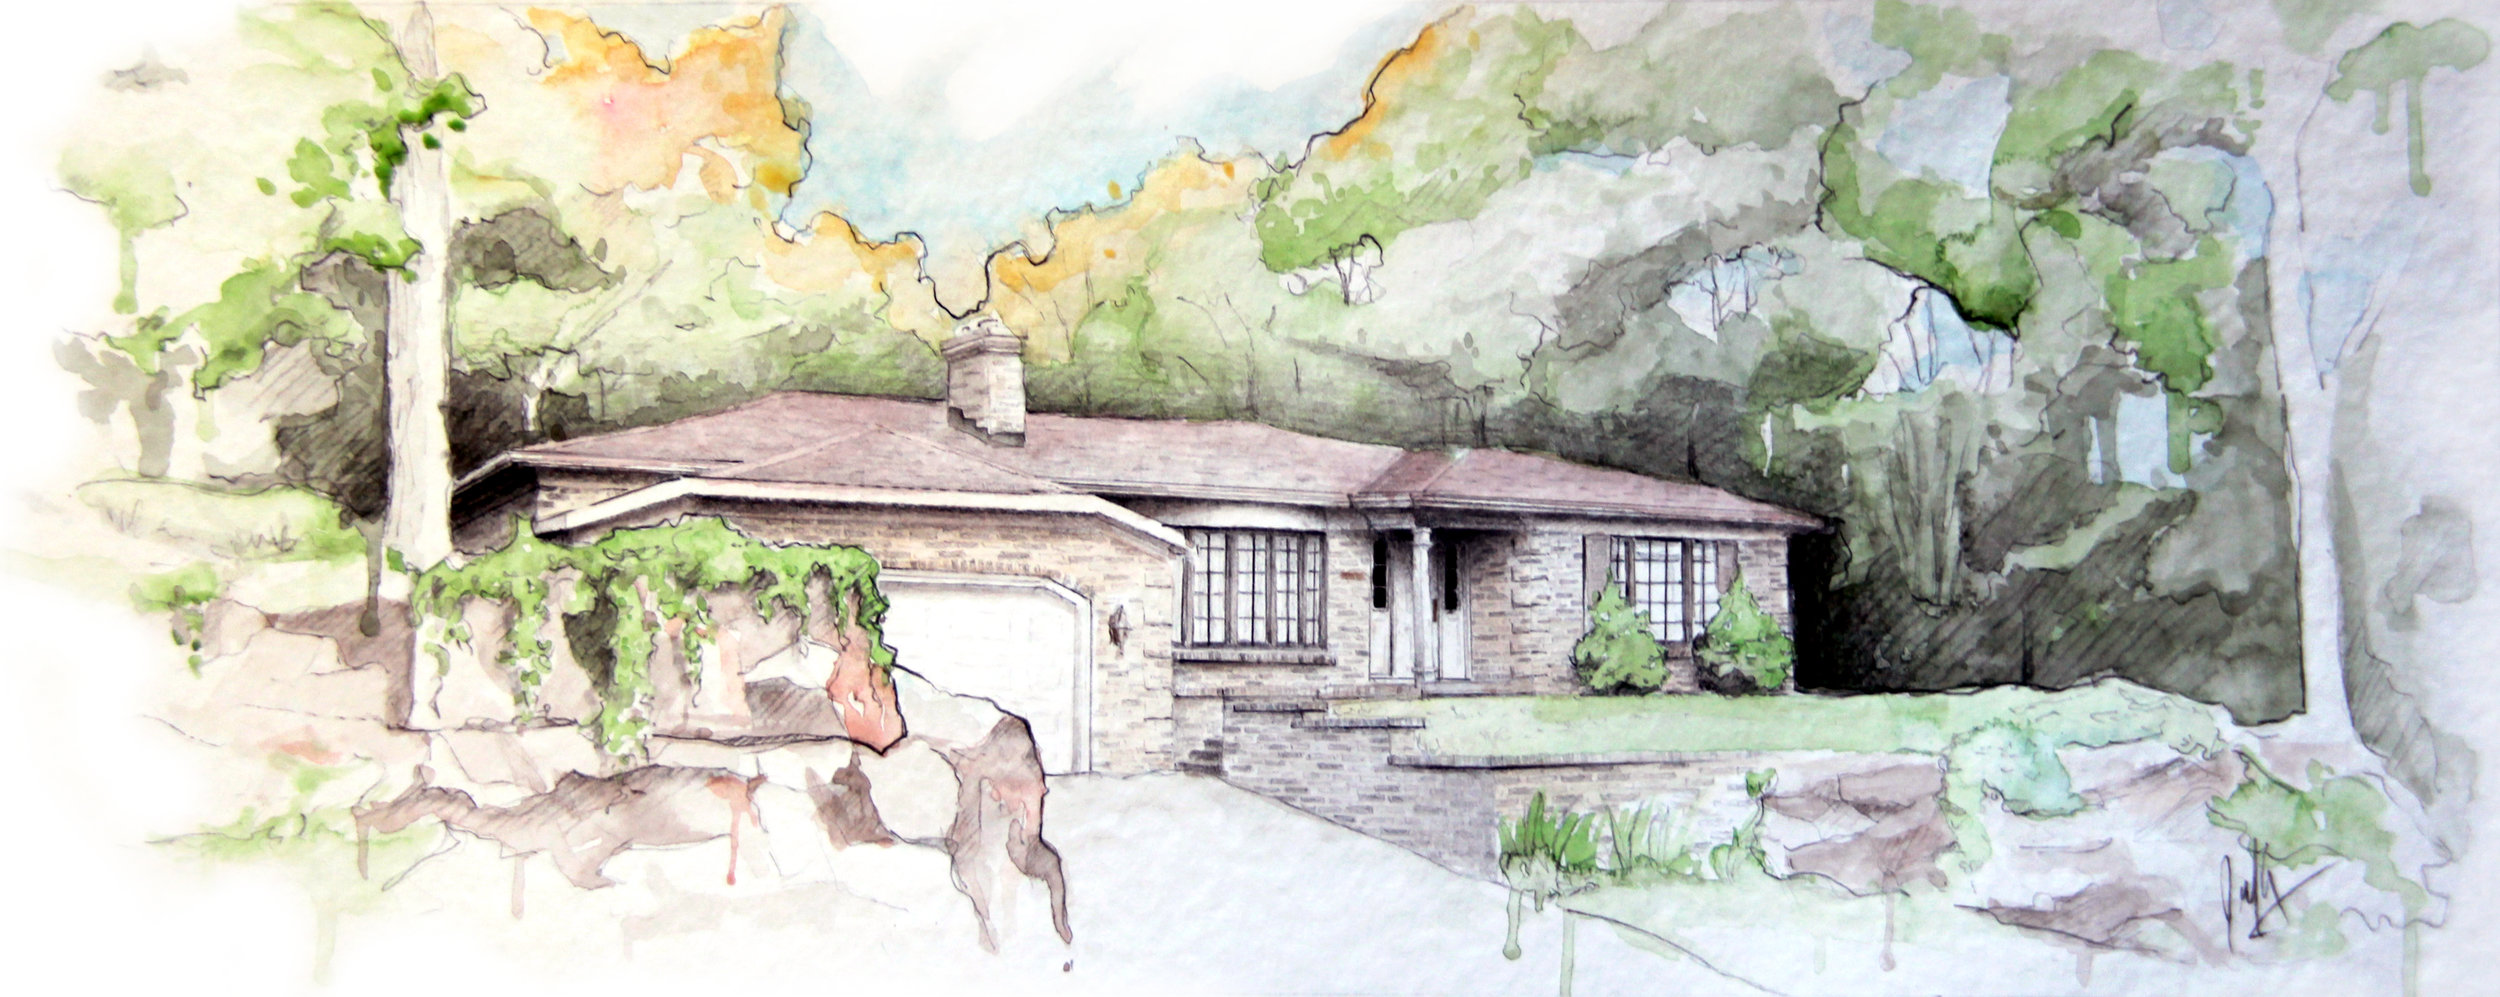 RESIDENTIAL WATERCOLOUR SKETCH